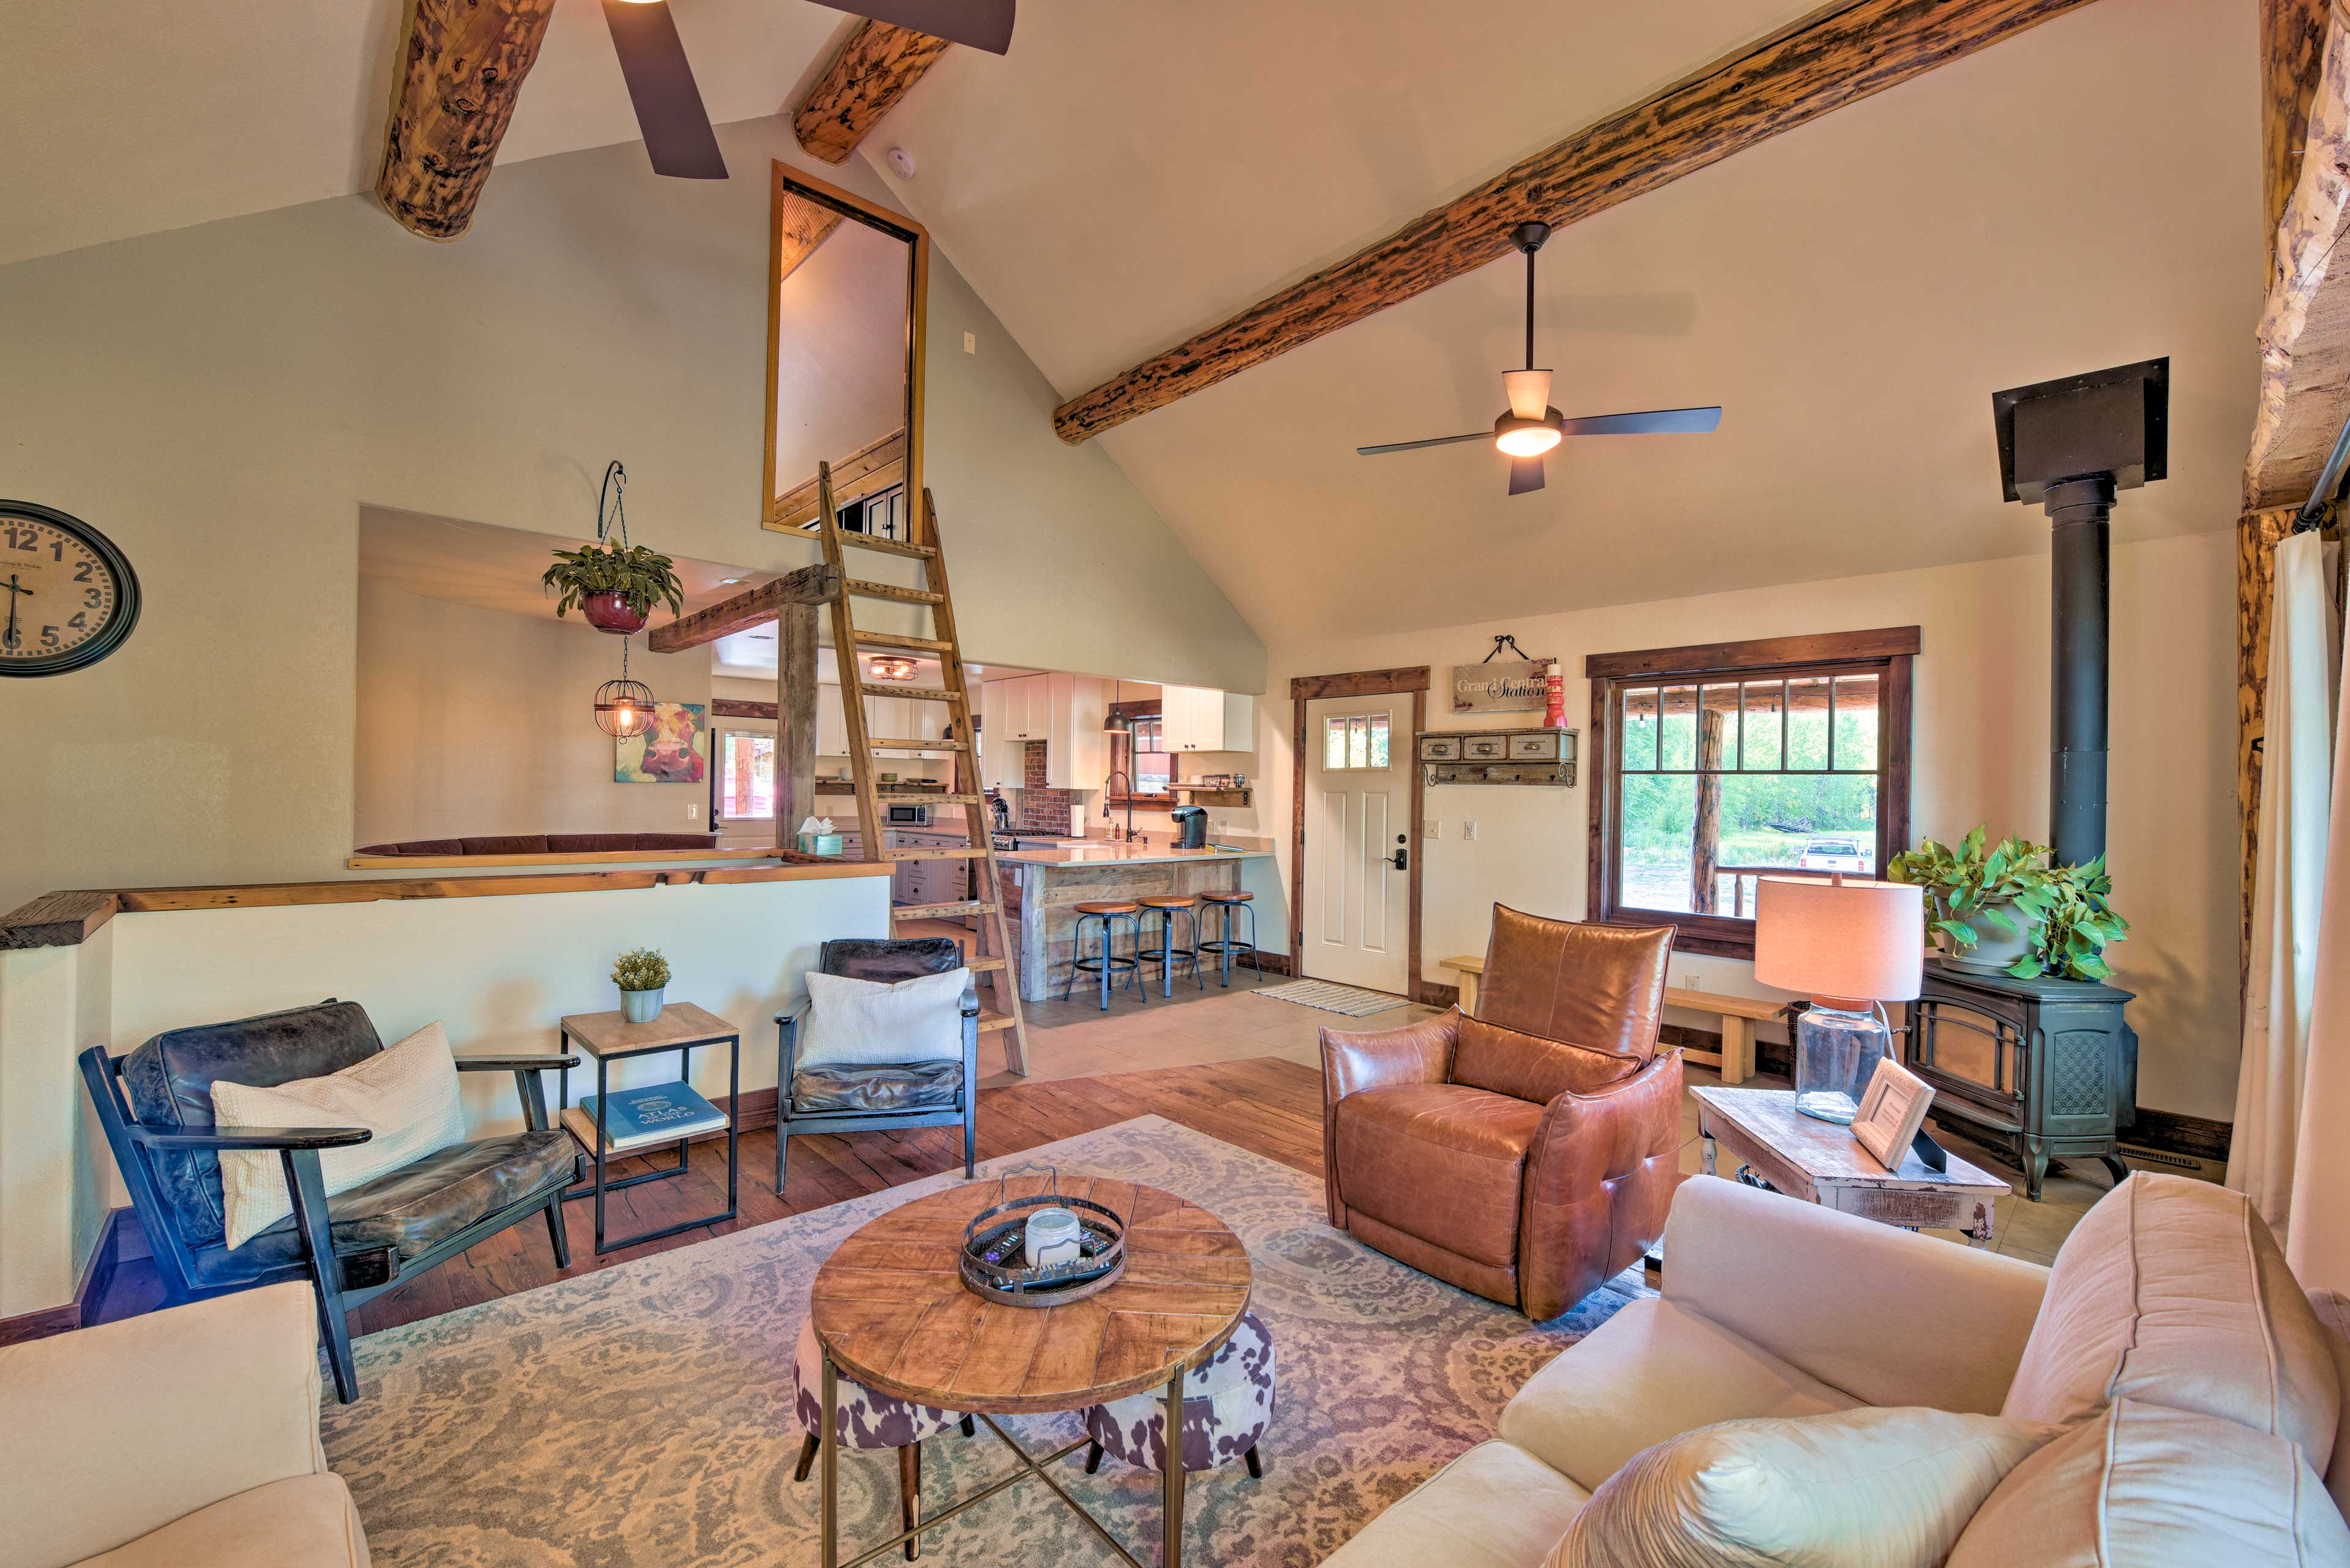 Living Room | Loft | Gas-Powered Stove | Rustic Furnishings | Steps Required